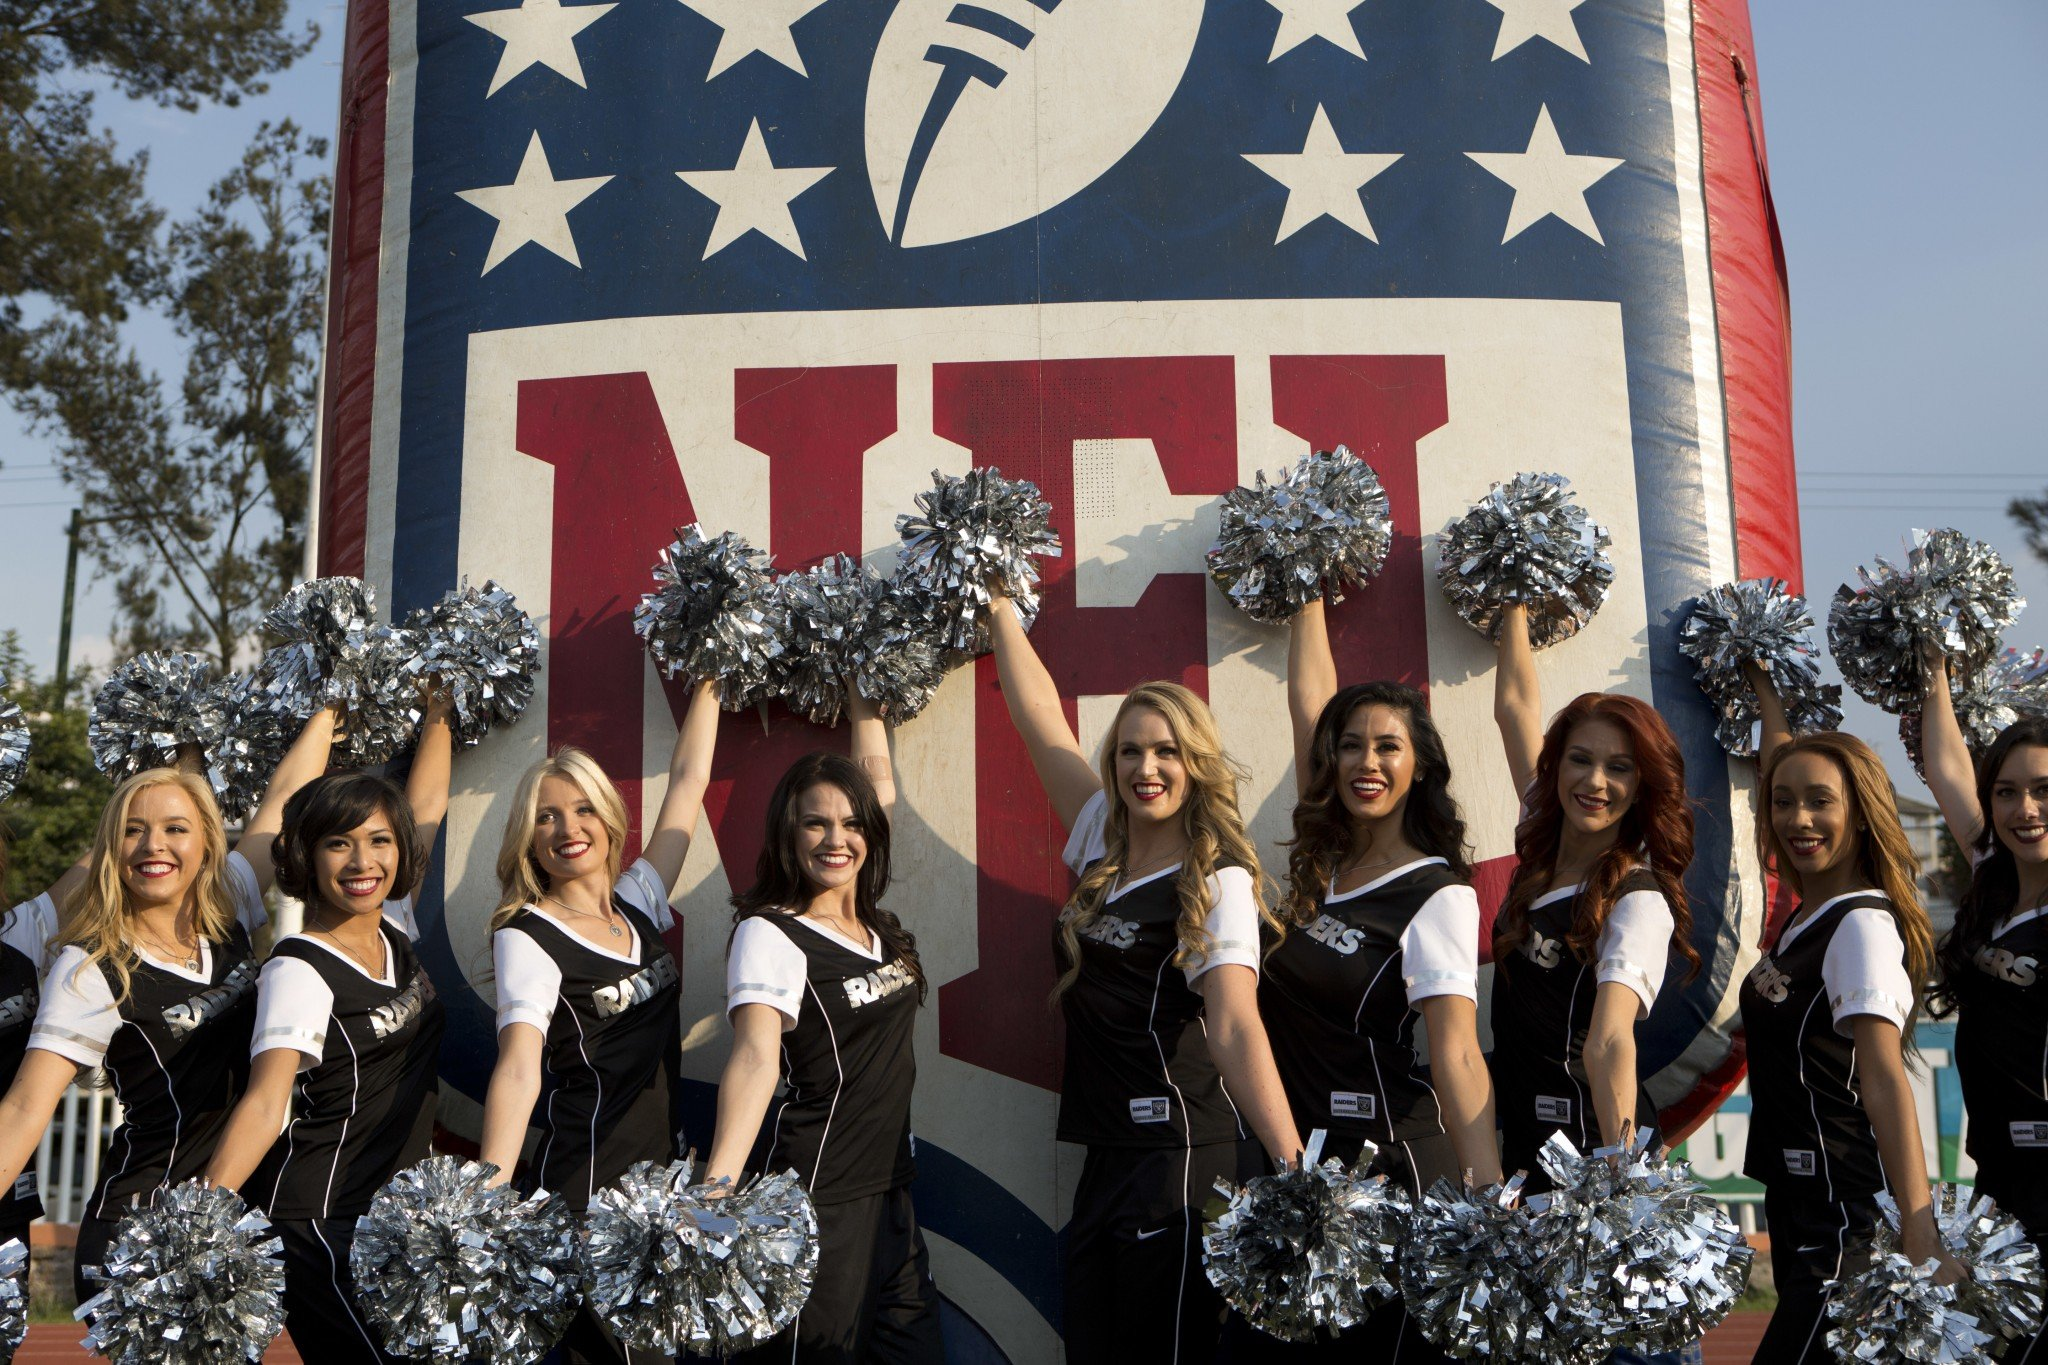 The Oakland Raiders' cheerleaders are adjusting as best they can to the high altitude of Mexico City. (AP)